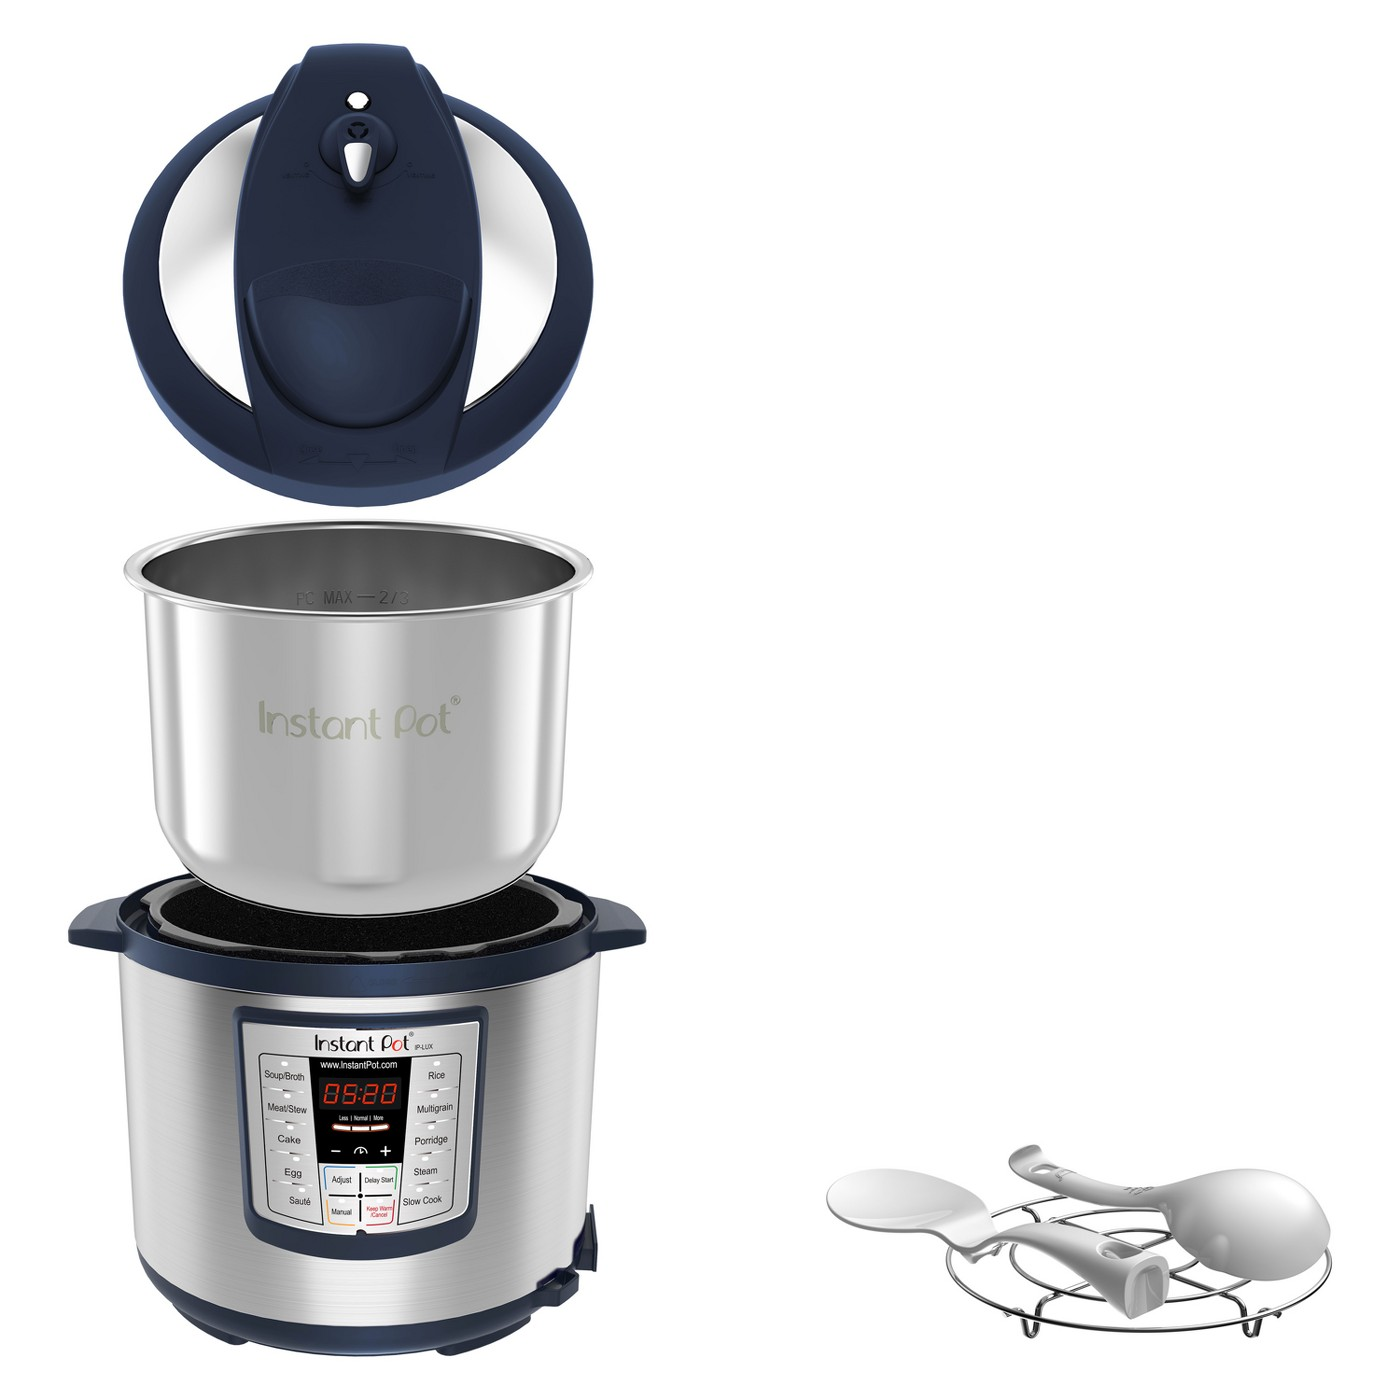 Instant Pot Lux 1000W Electric Pressure Cooker with Accessories - Navy - image 2 of 4